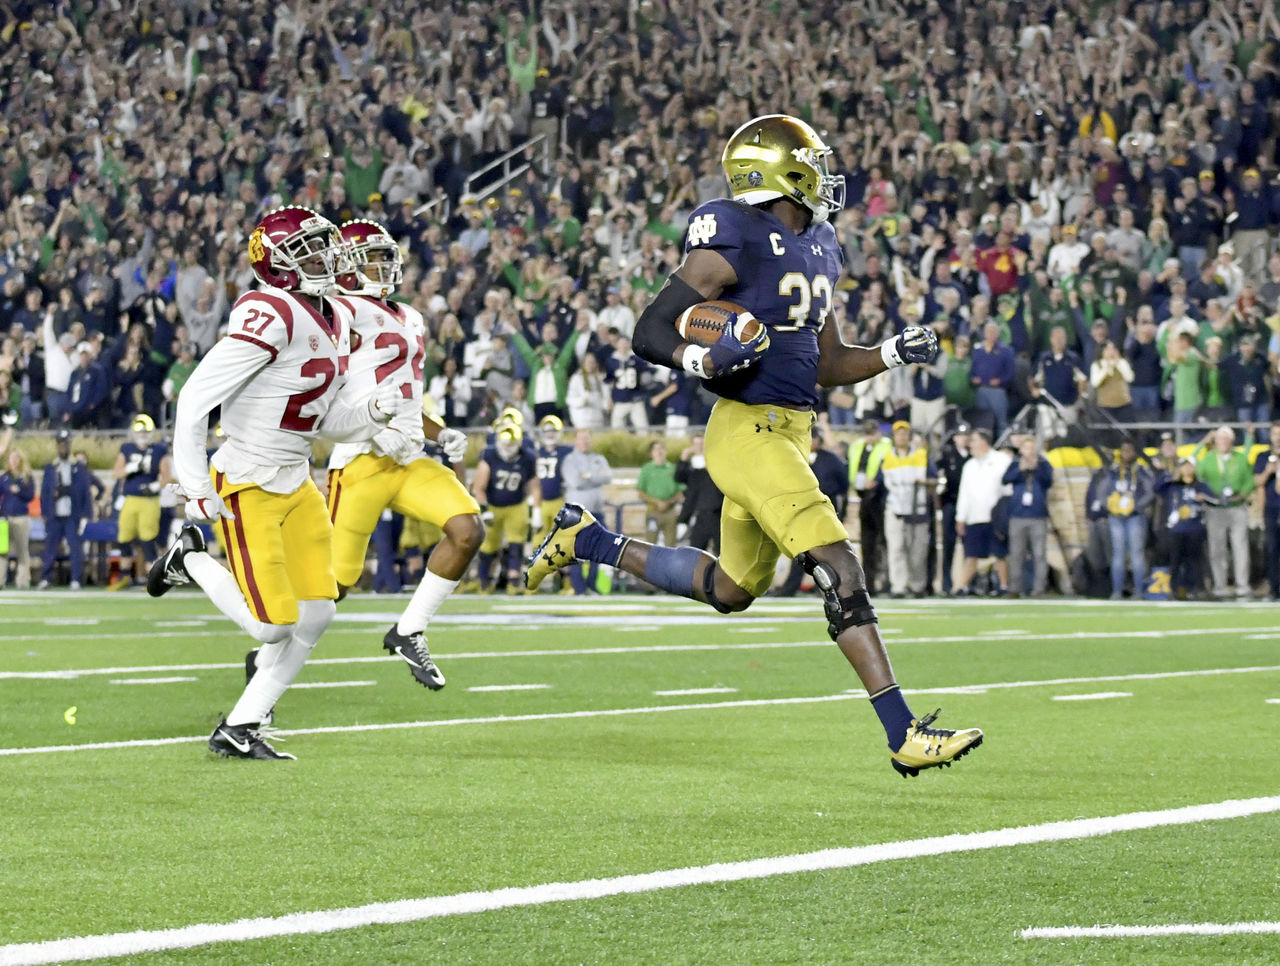 Cropped 2017 10 22t023220z 1815511227 nocid rtrmadp 3 ncaa football southern california at notre dame